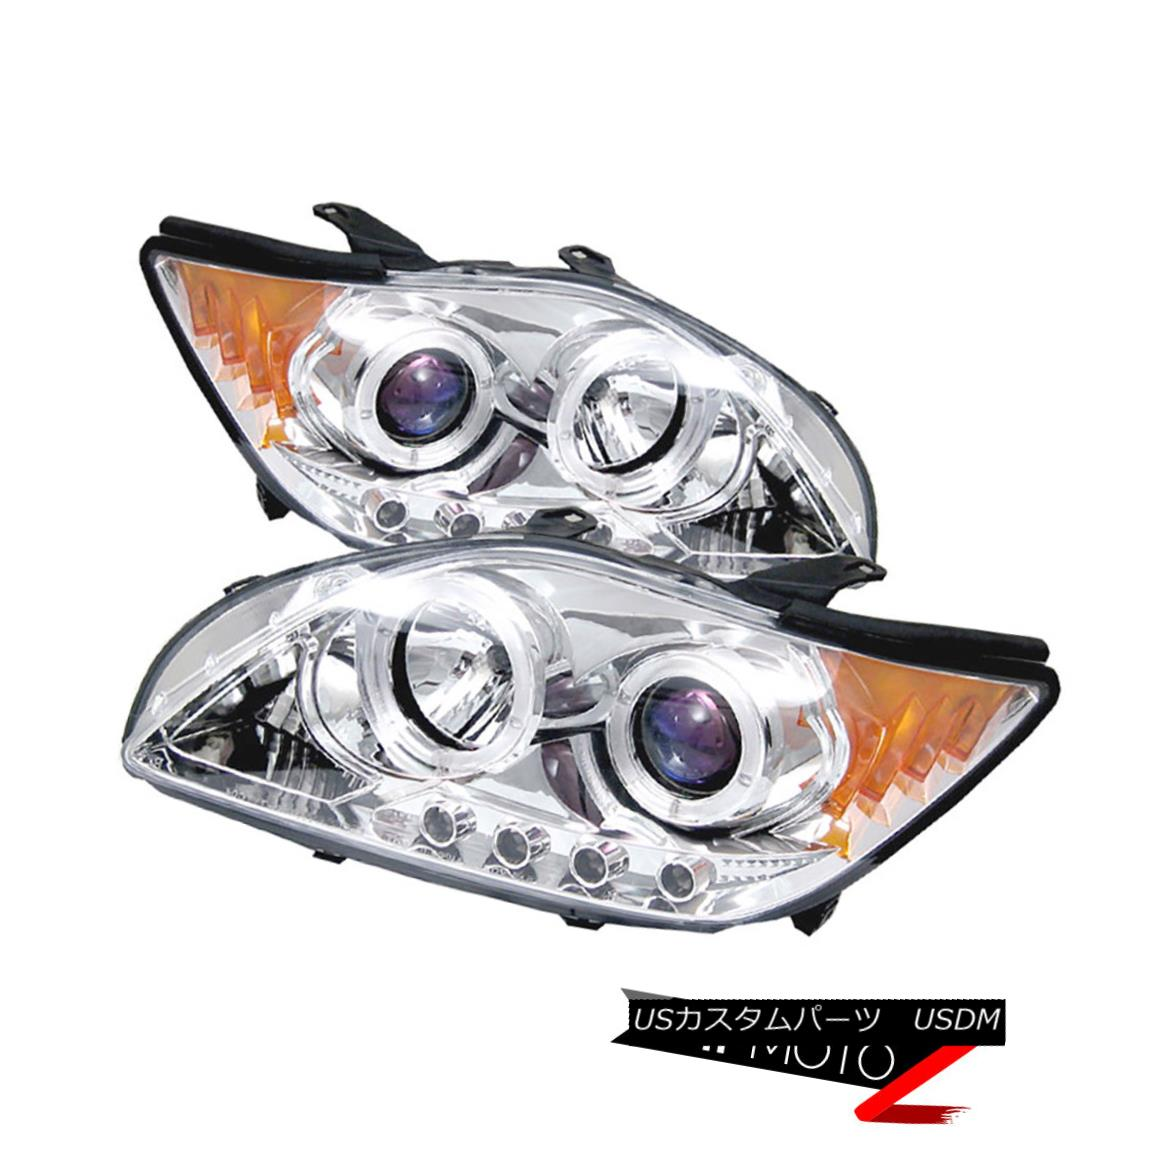 ヘッドライト Scion tC 05-07 Halo Angel Eye Projector Clear Headlight Amber Signal Lamp L+R Scion tC 05-07 Halo Angel EyeプロジェクタークリアヘッドライトアンバーシグナルランプL + R